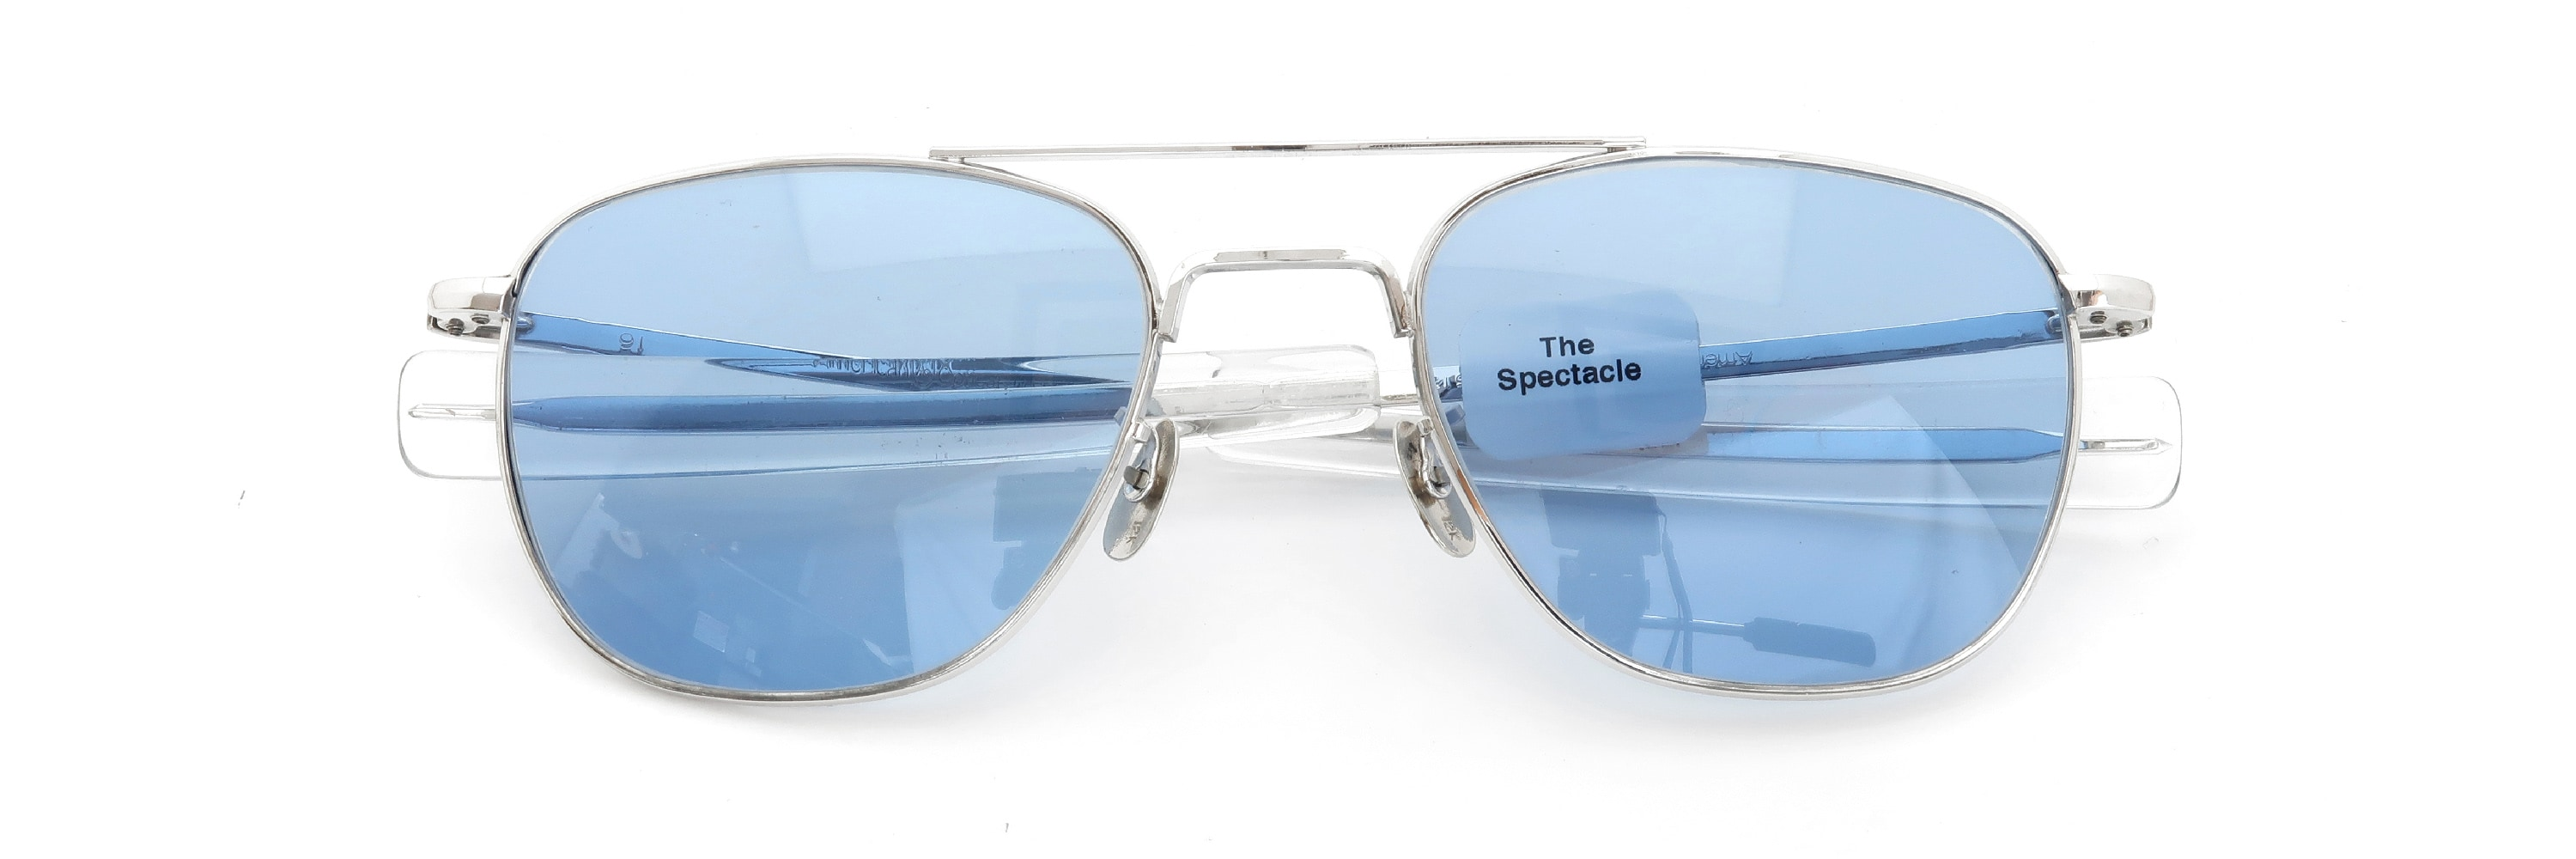 The Spectacle メガネ 1950s-1960s American Optical Mid-Century-Modern-Pilot Truman WG 1-10 12KGF Solid-12K-Gold-Nose-Pads イメージ